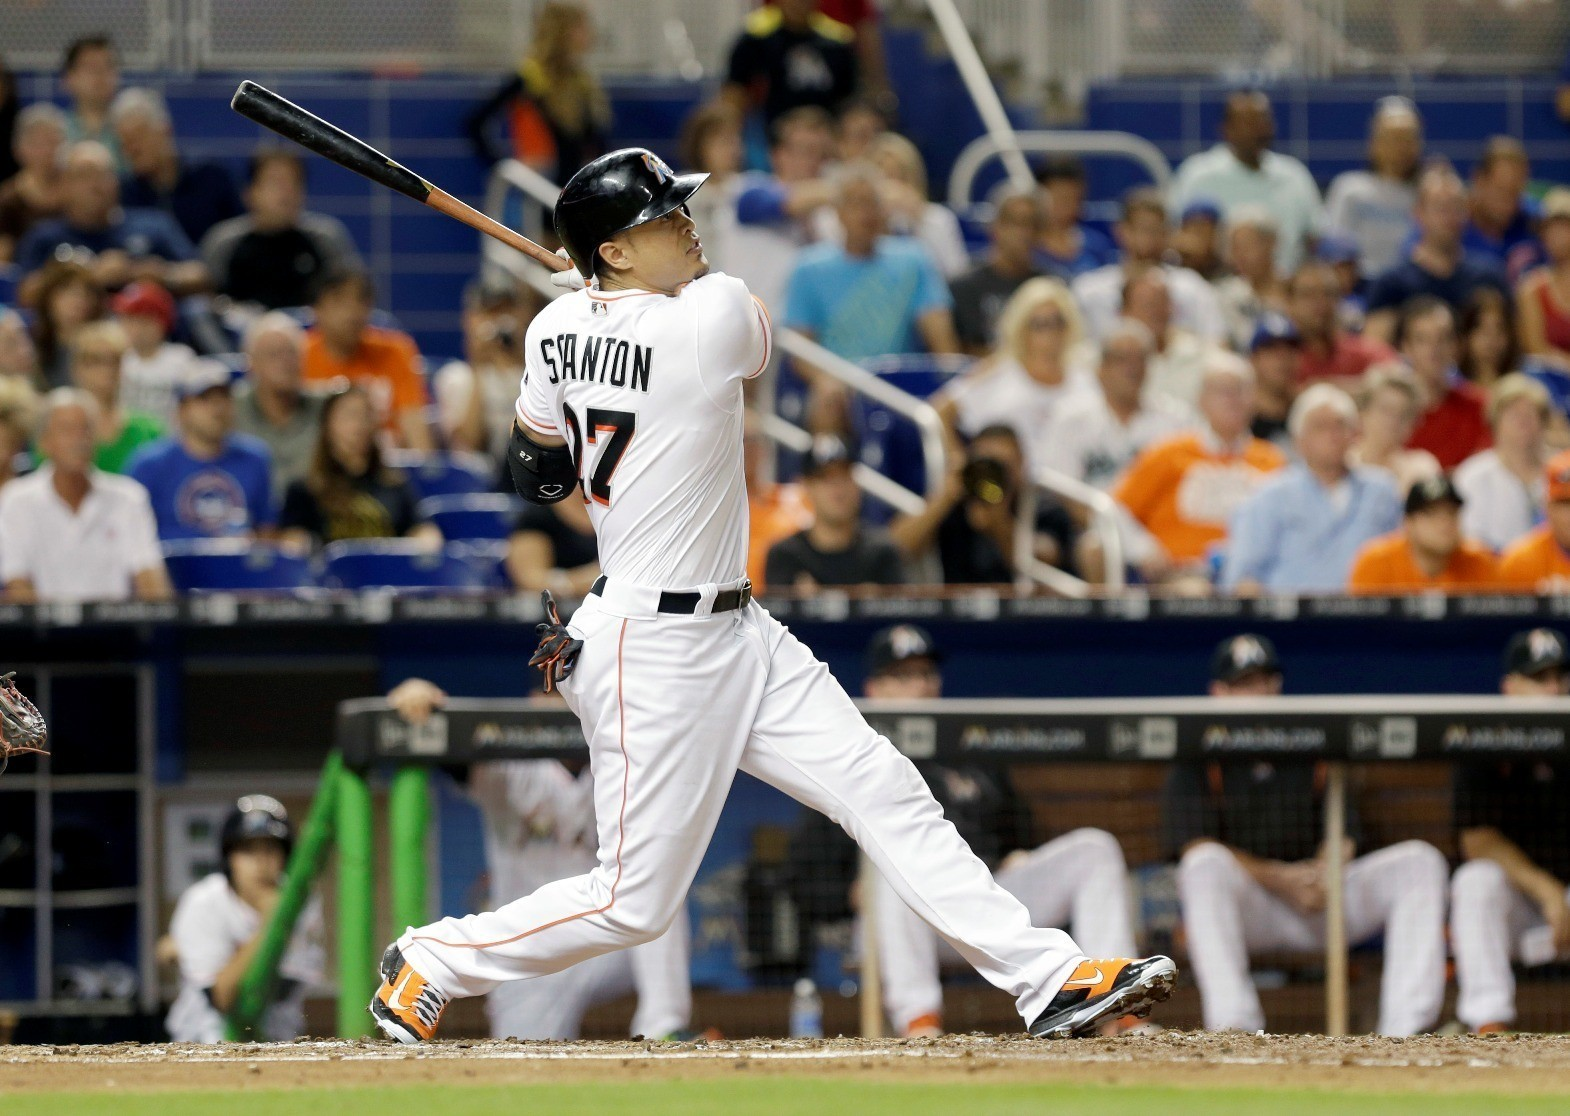 Fl-marlins-news-0625-20160624